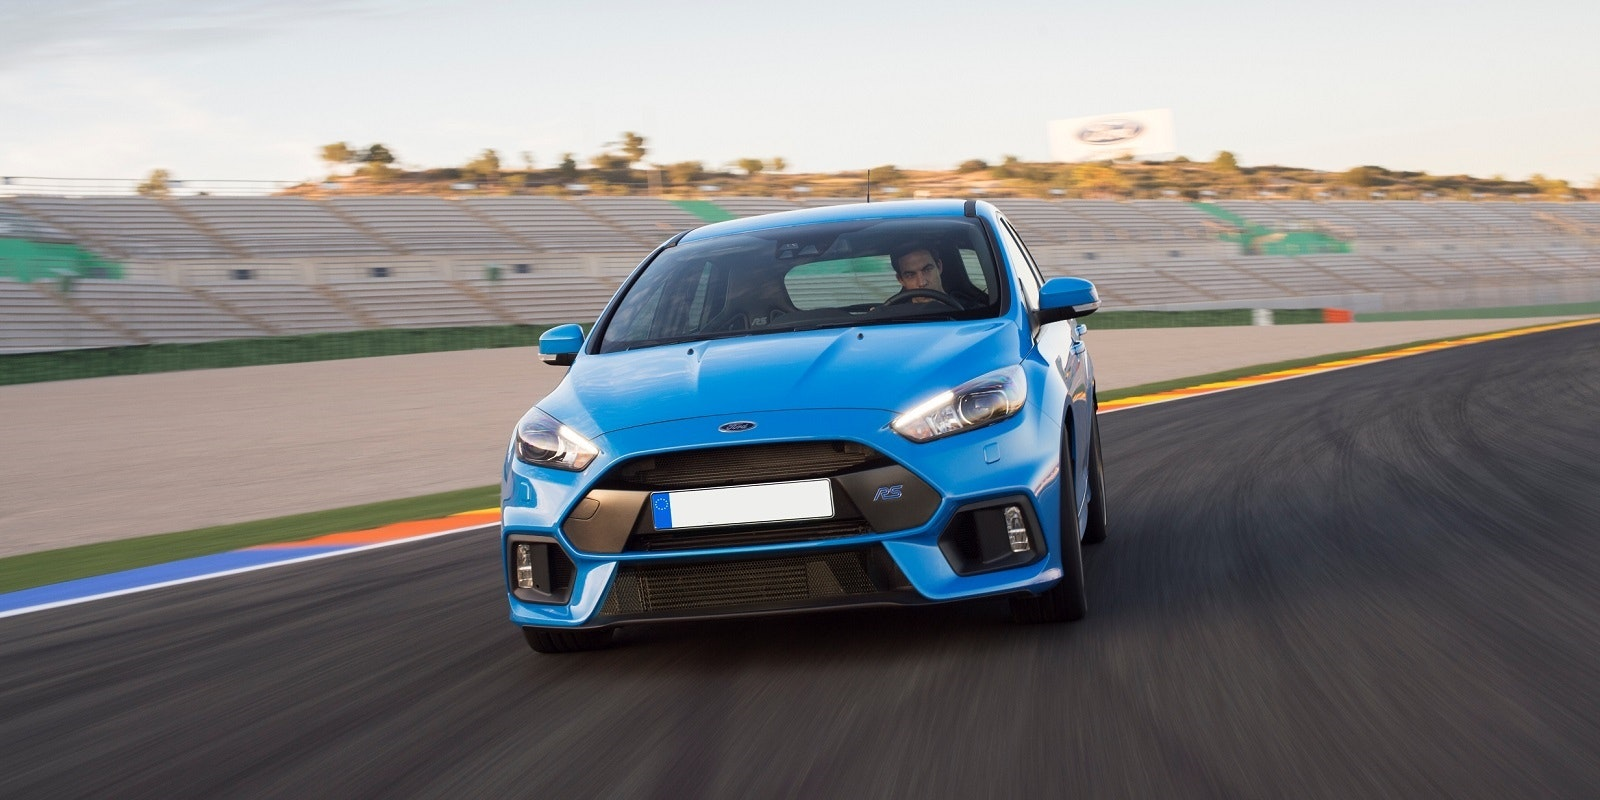 1ford focus rs comes with industry first drift mode.jpg?ixlib=rb 1.1